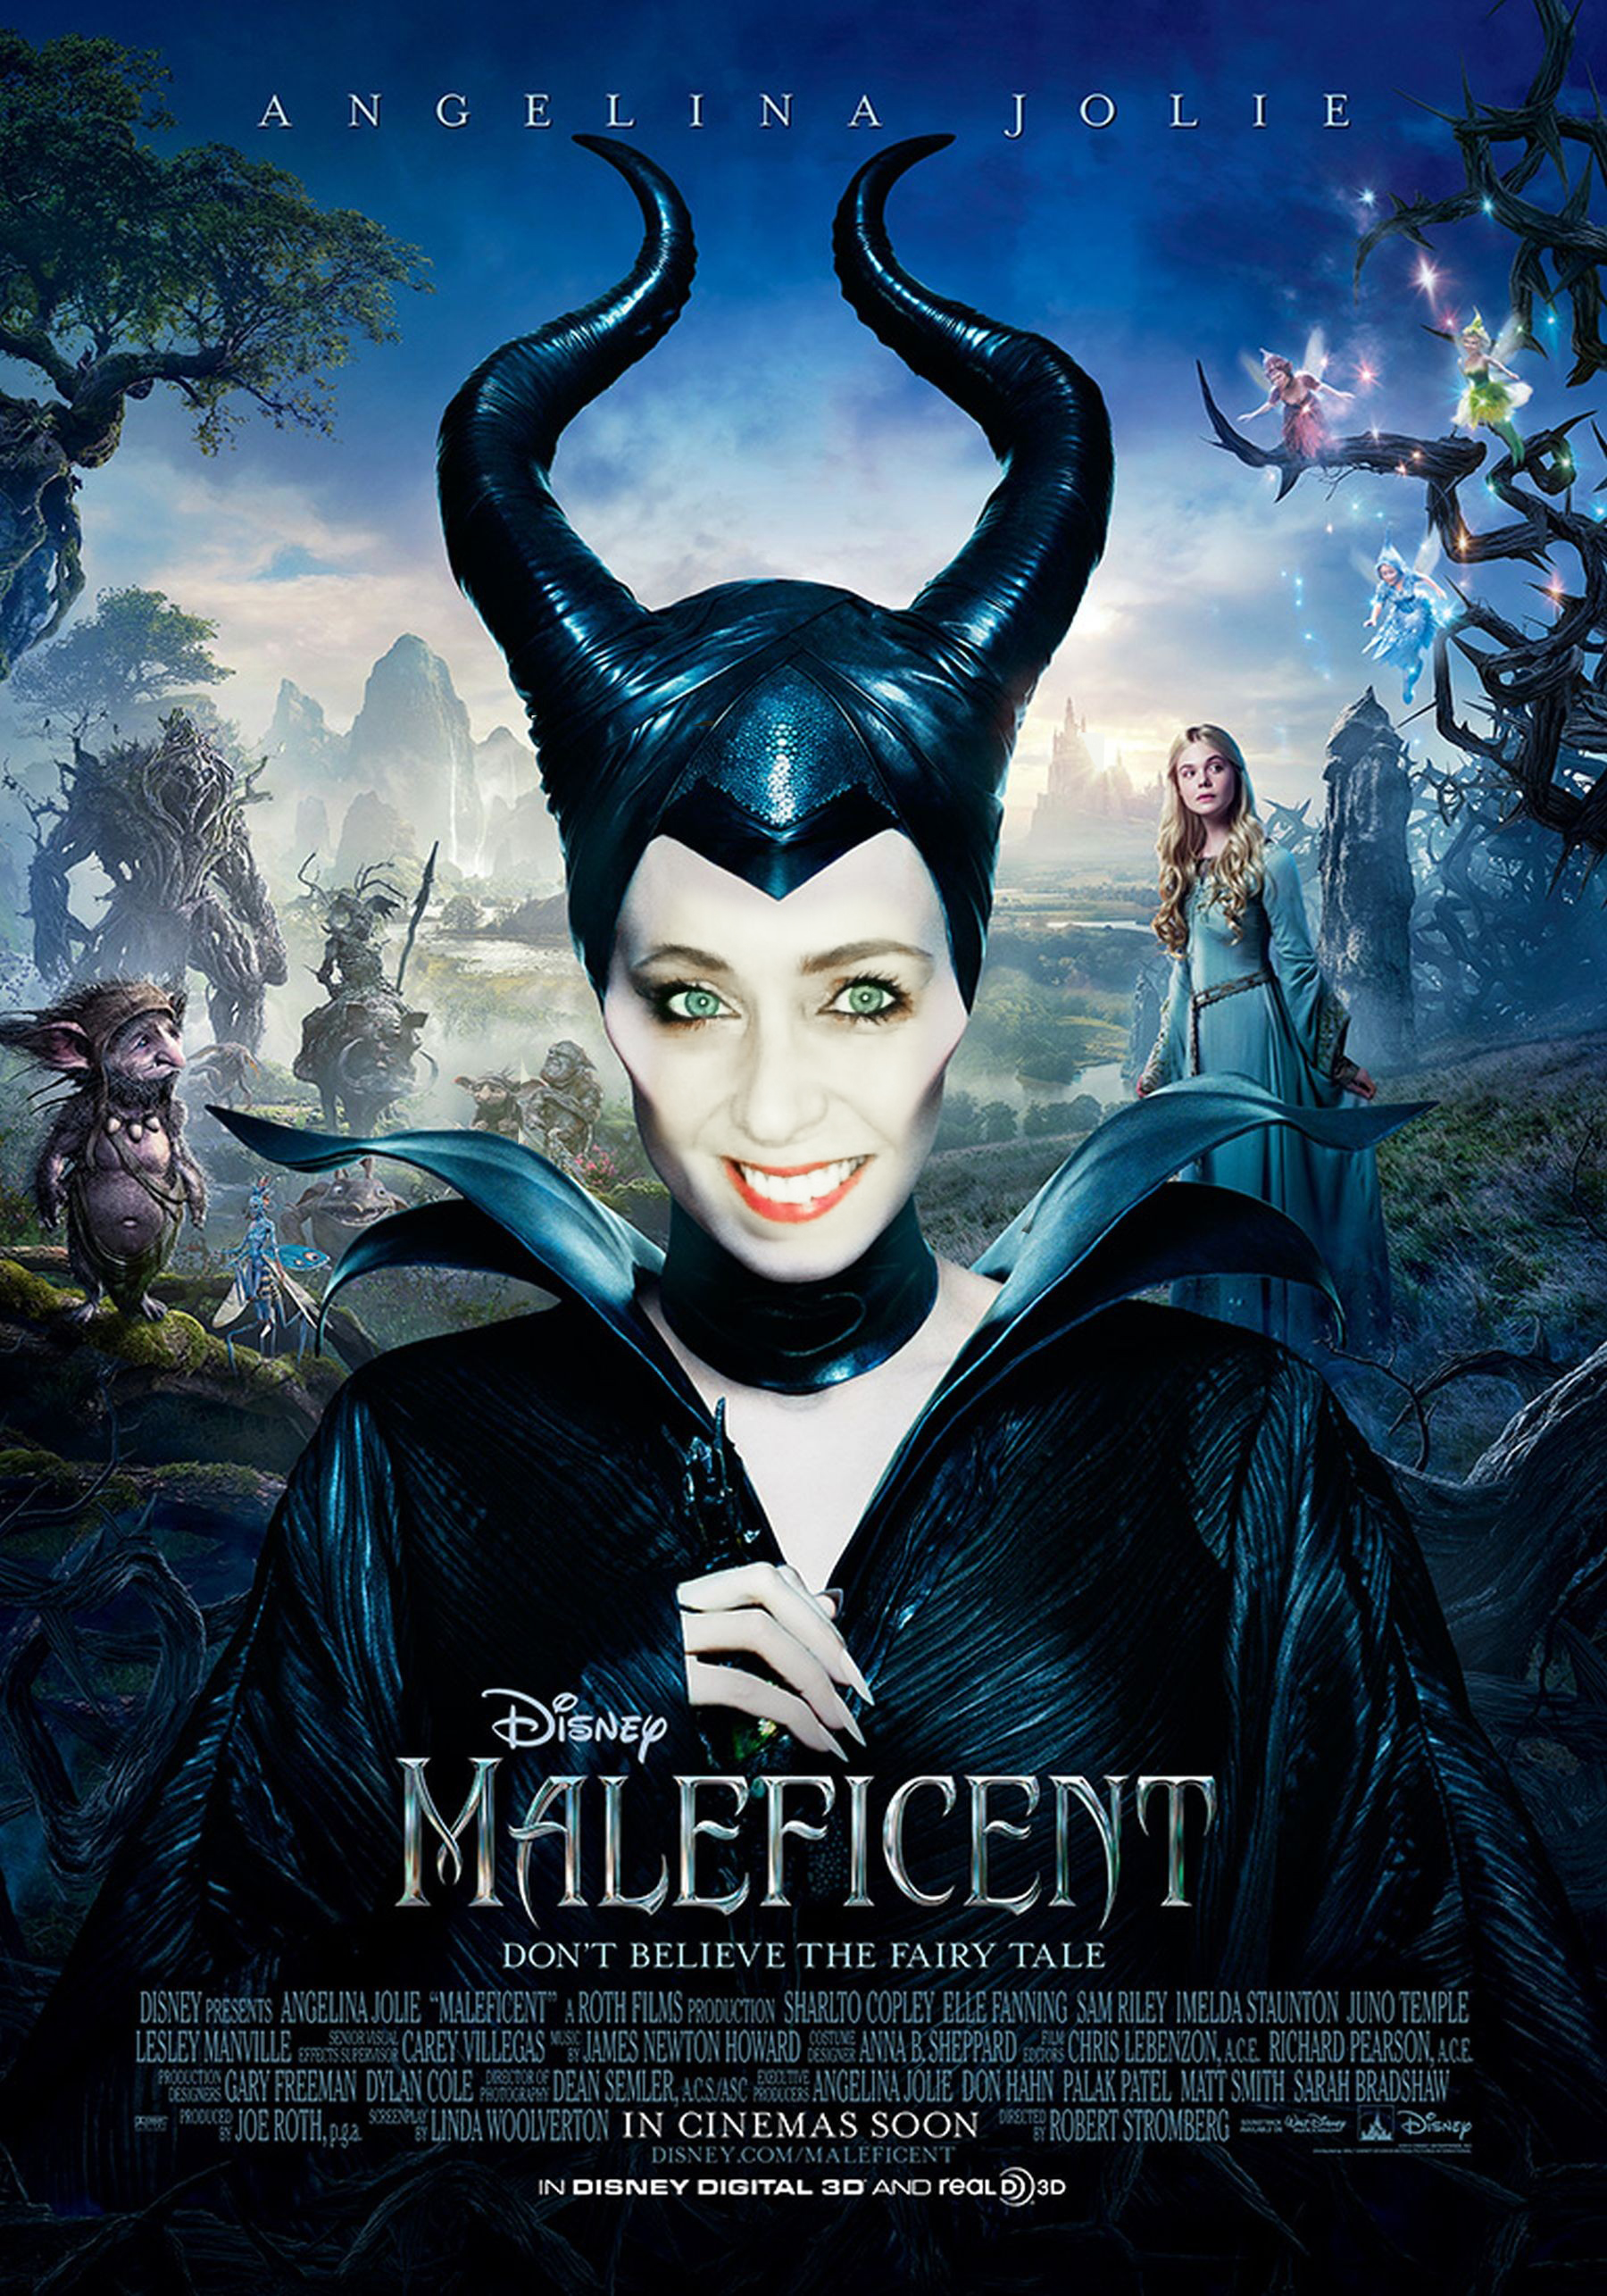 Malificentkath